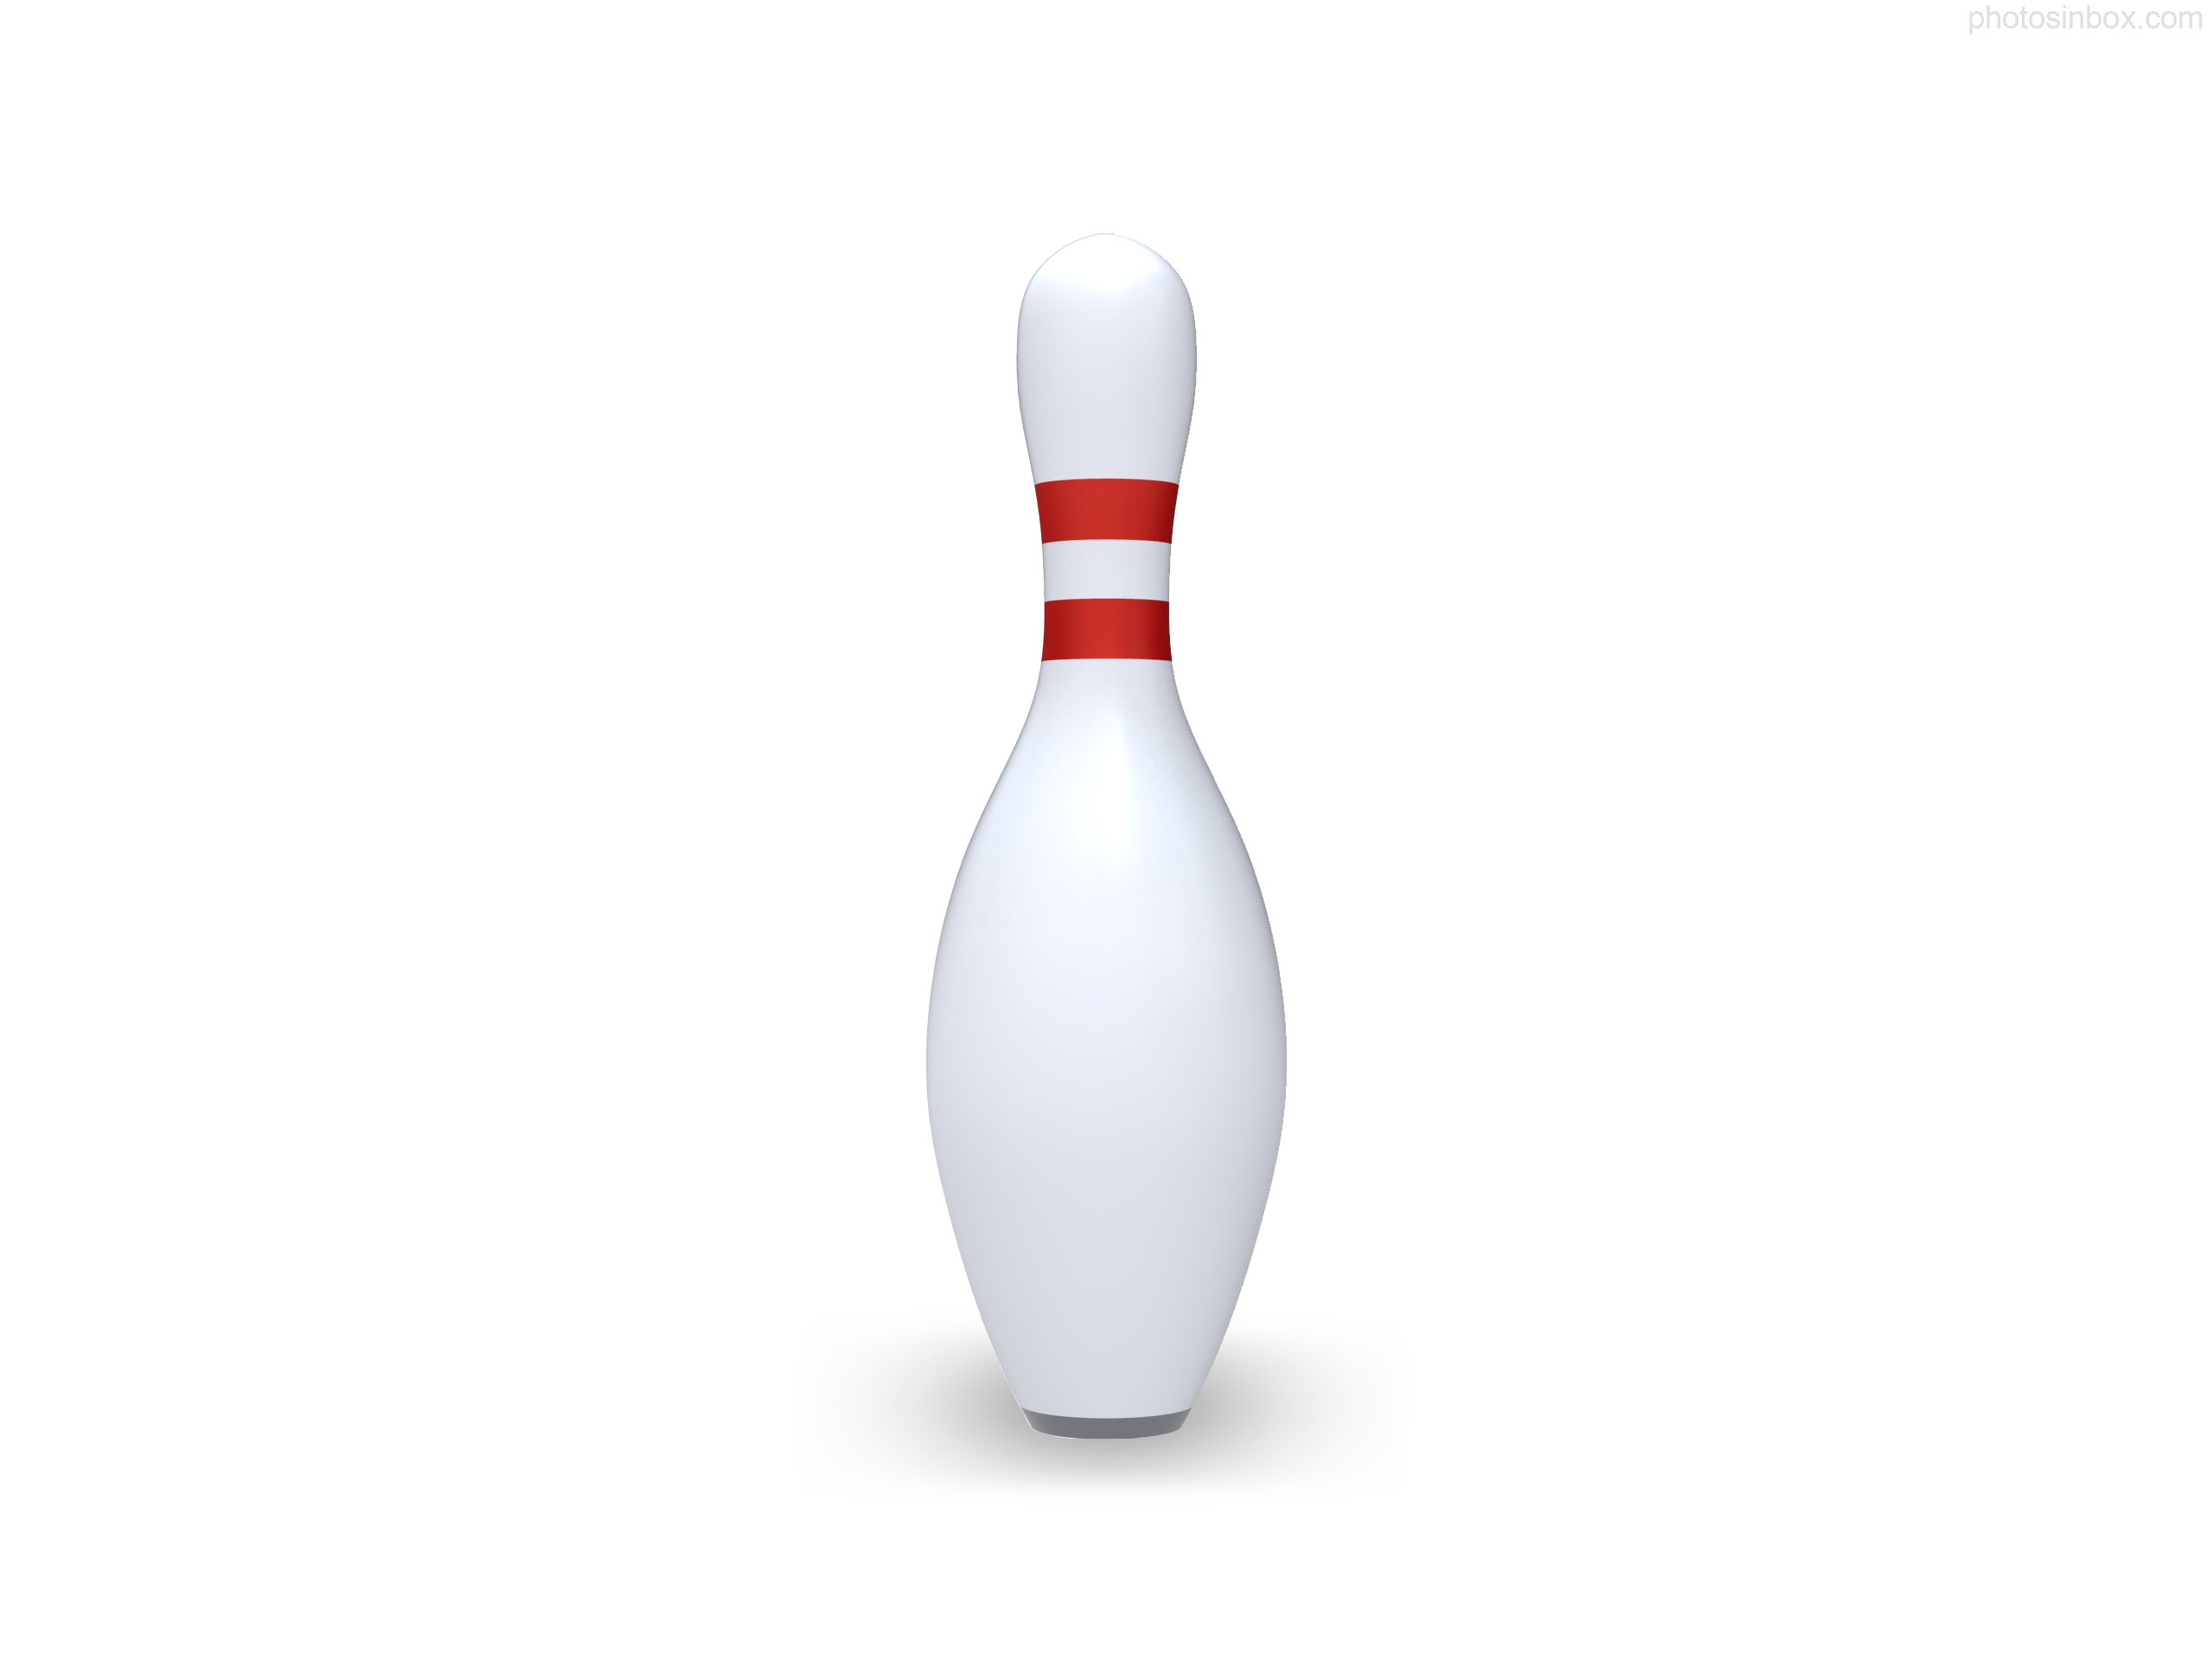 Clip Art Bowling Pin Coloring Page bowling pin pictures clipart best dji phantom quadcopter page 898 rc groups pin